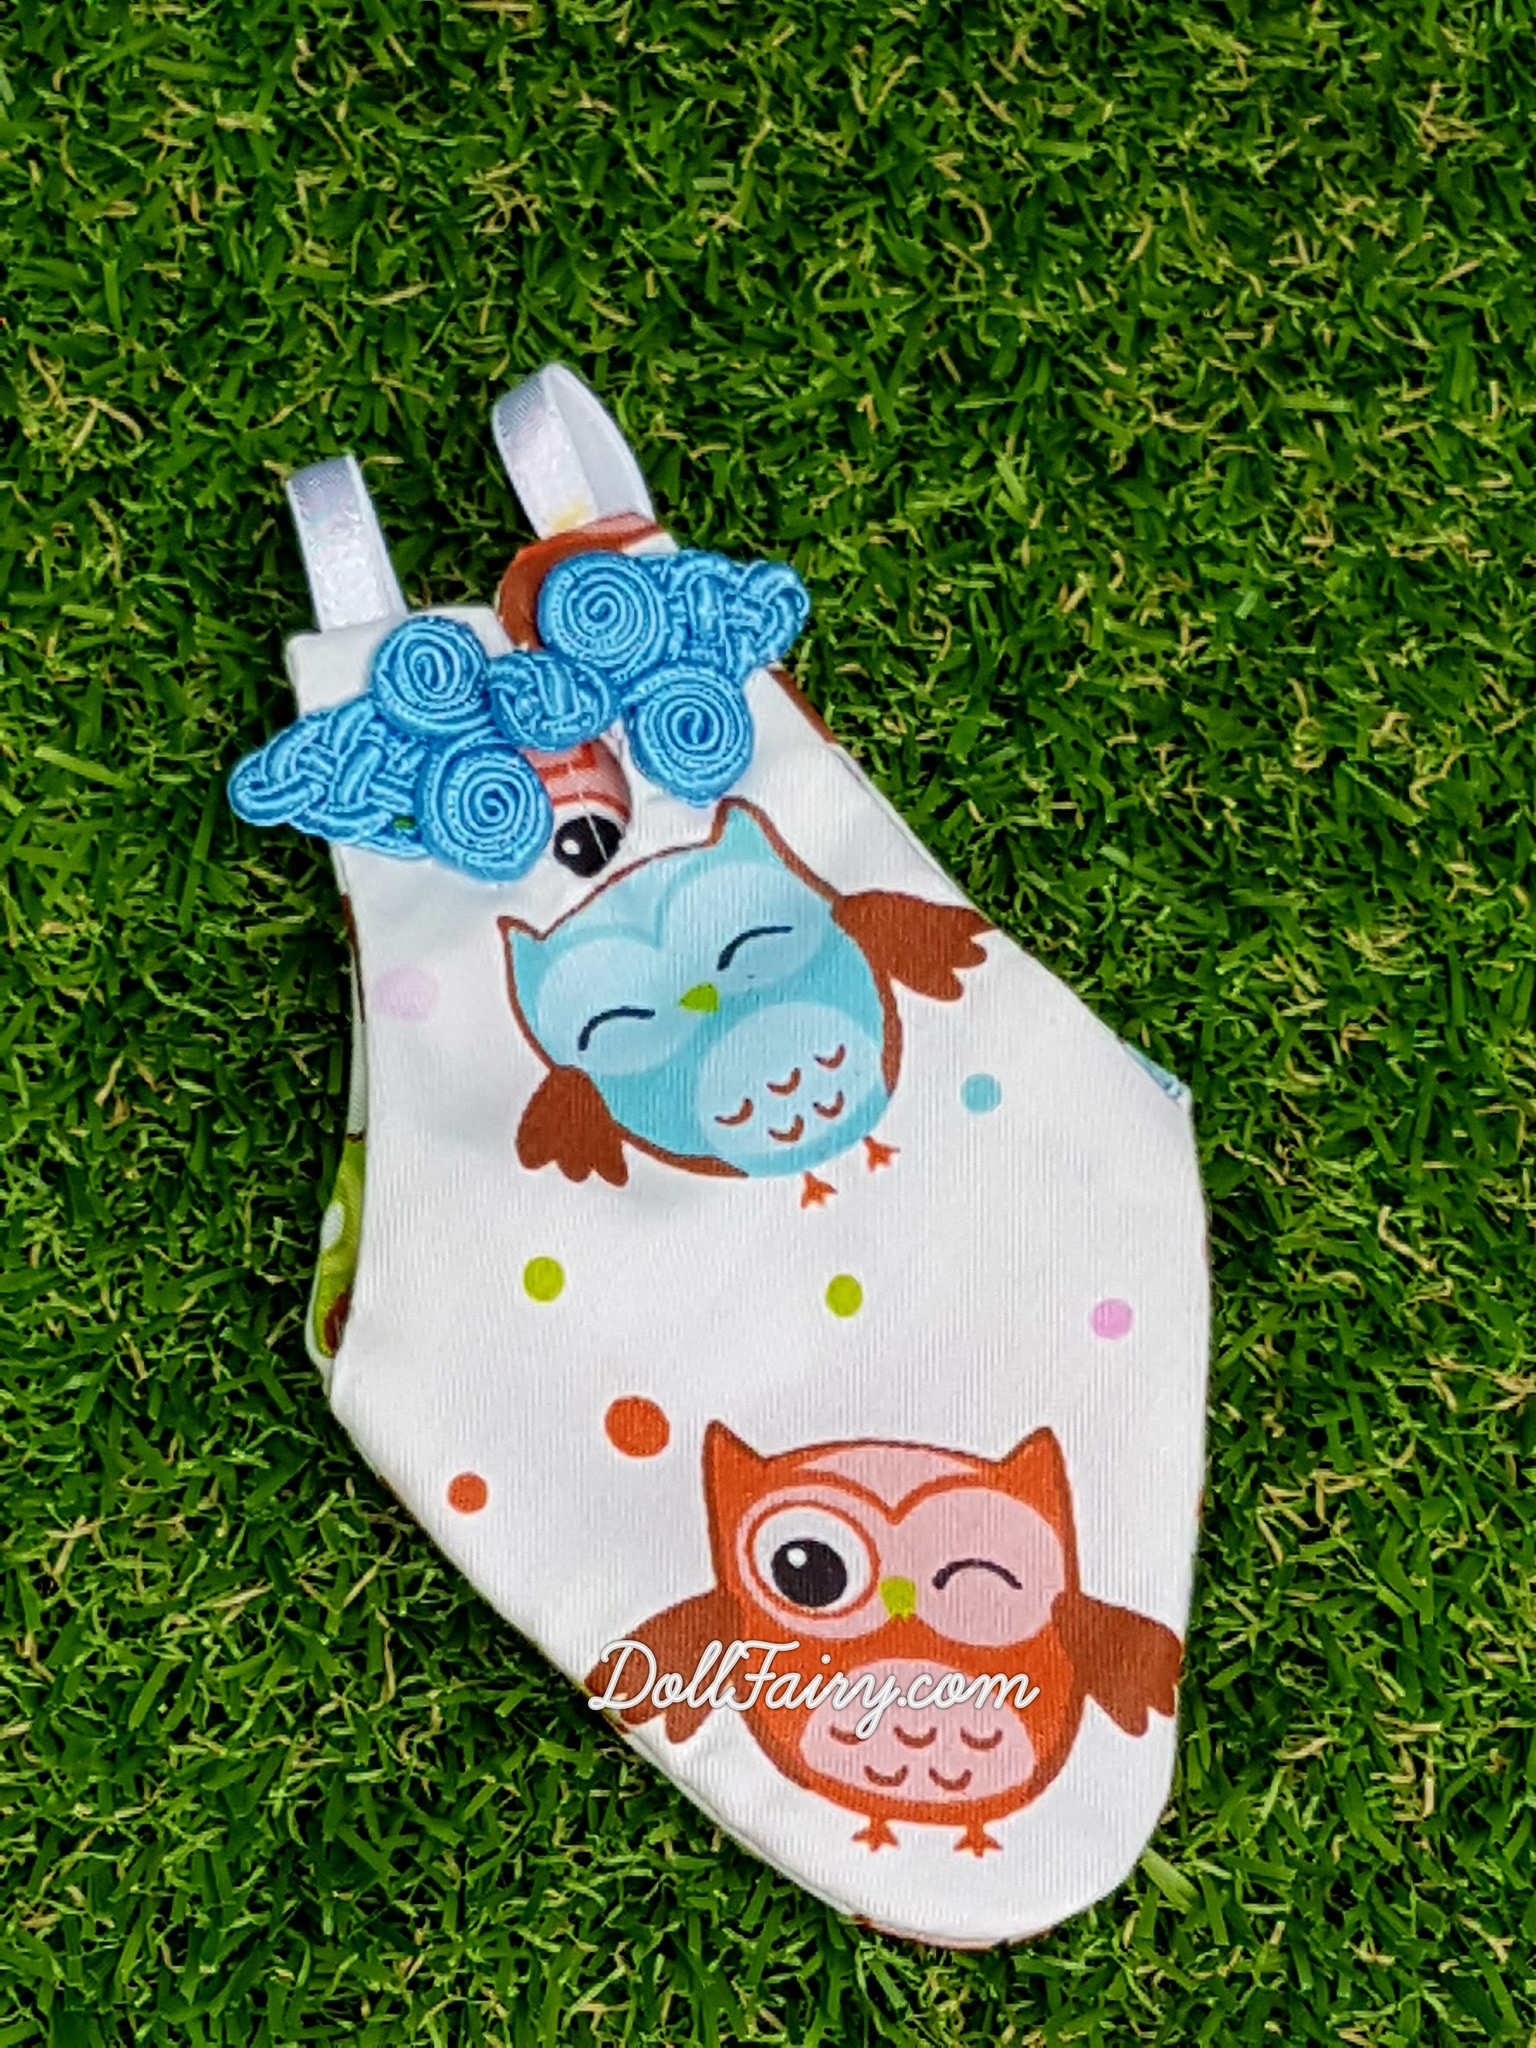 Comical owls cheongsam with blue oriental knot for a Yellow Sided Conure.